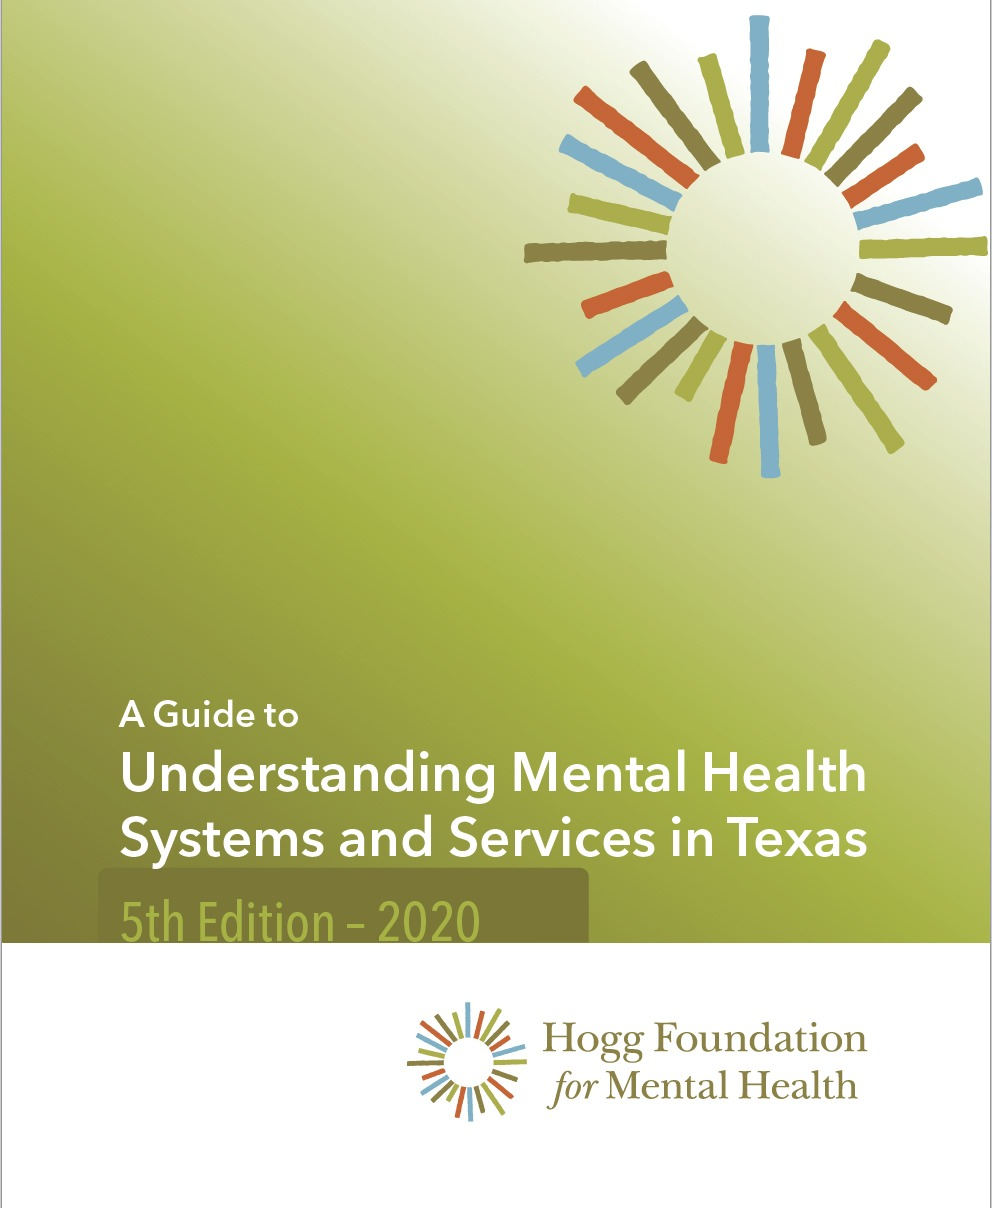 Mental Health Guide - 5th Edition